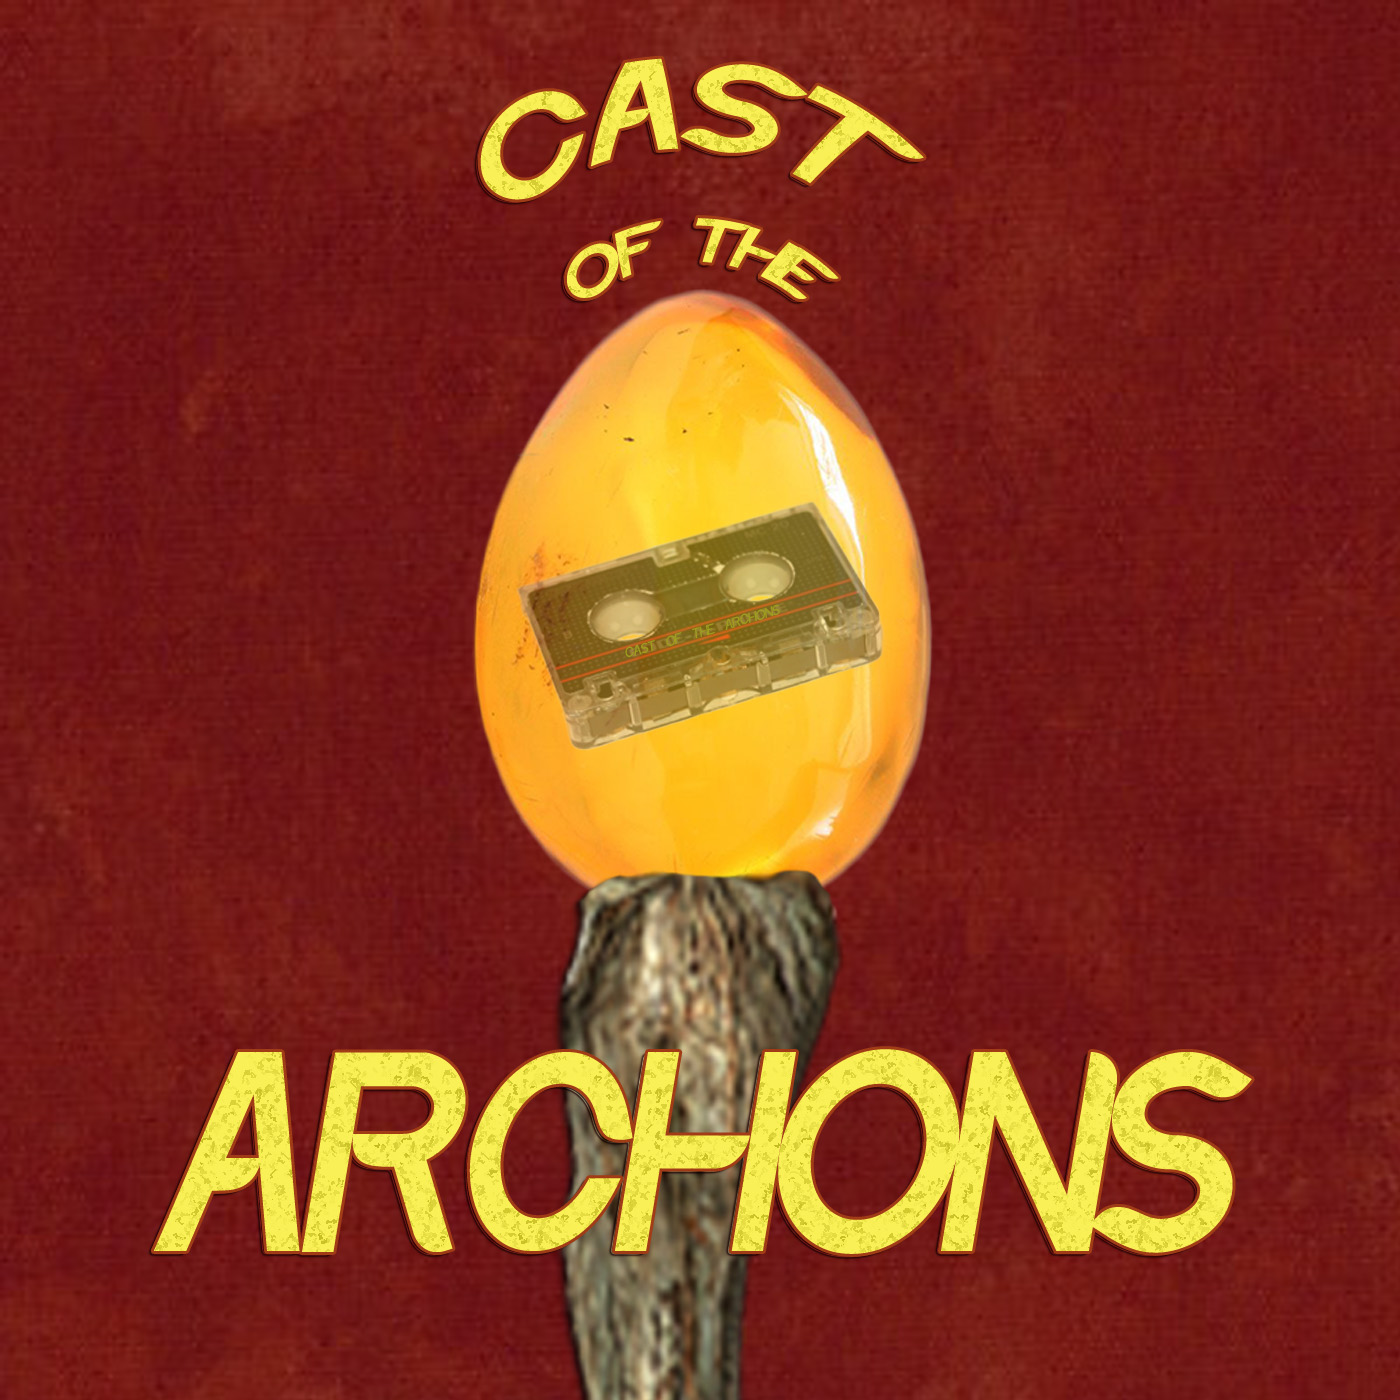 Cast of the Archons Episode 5 - Time of Triumph